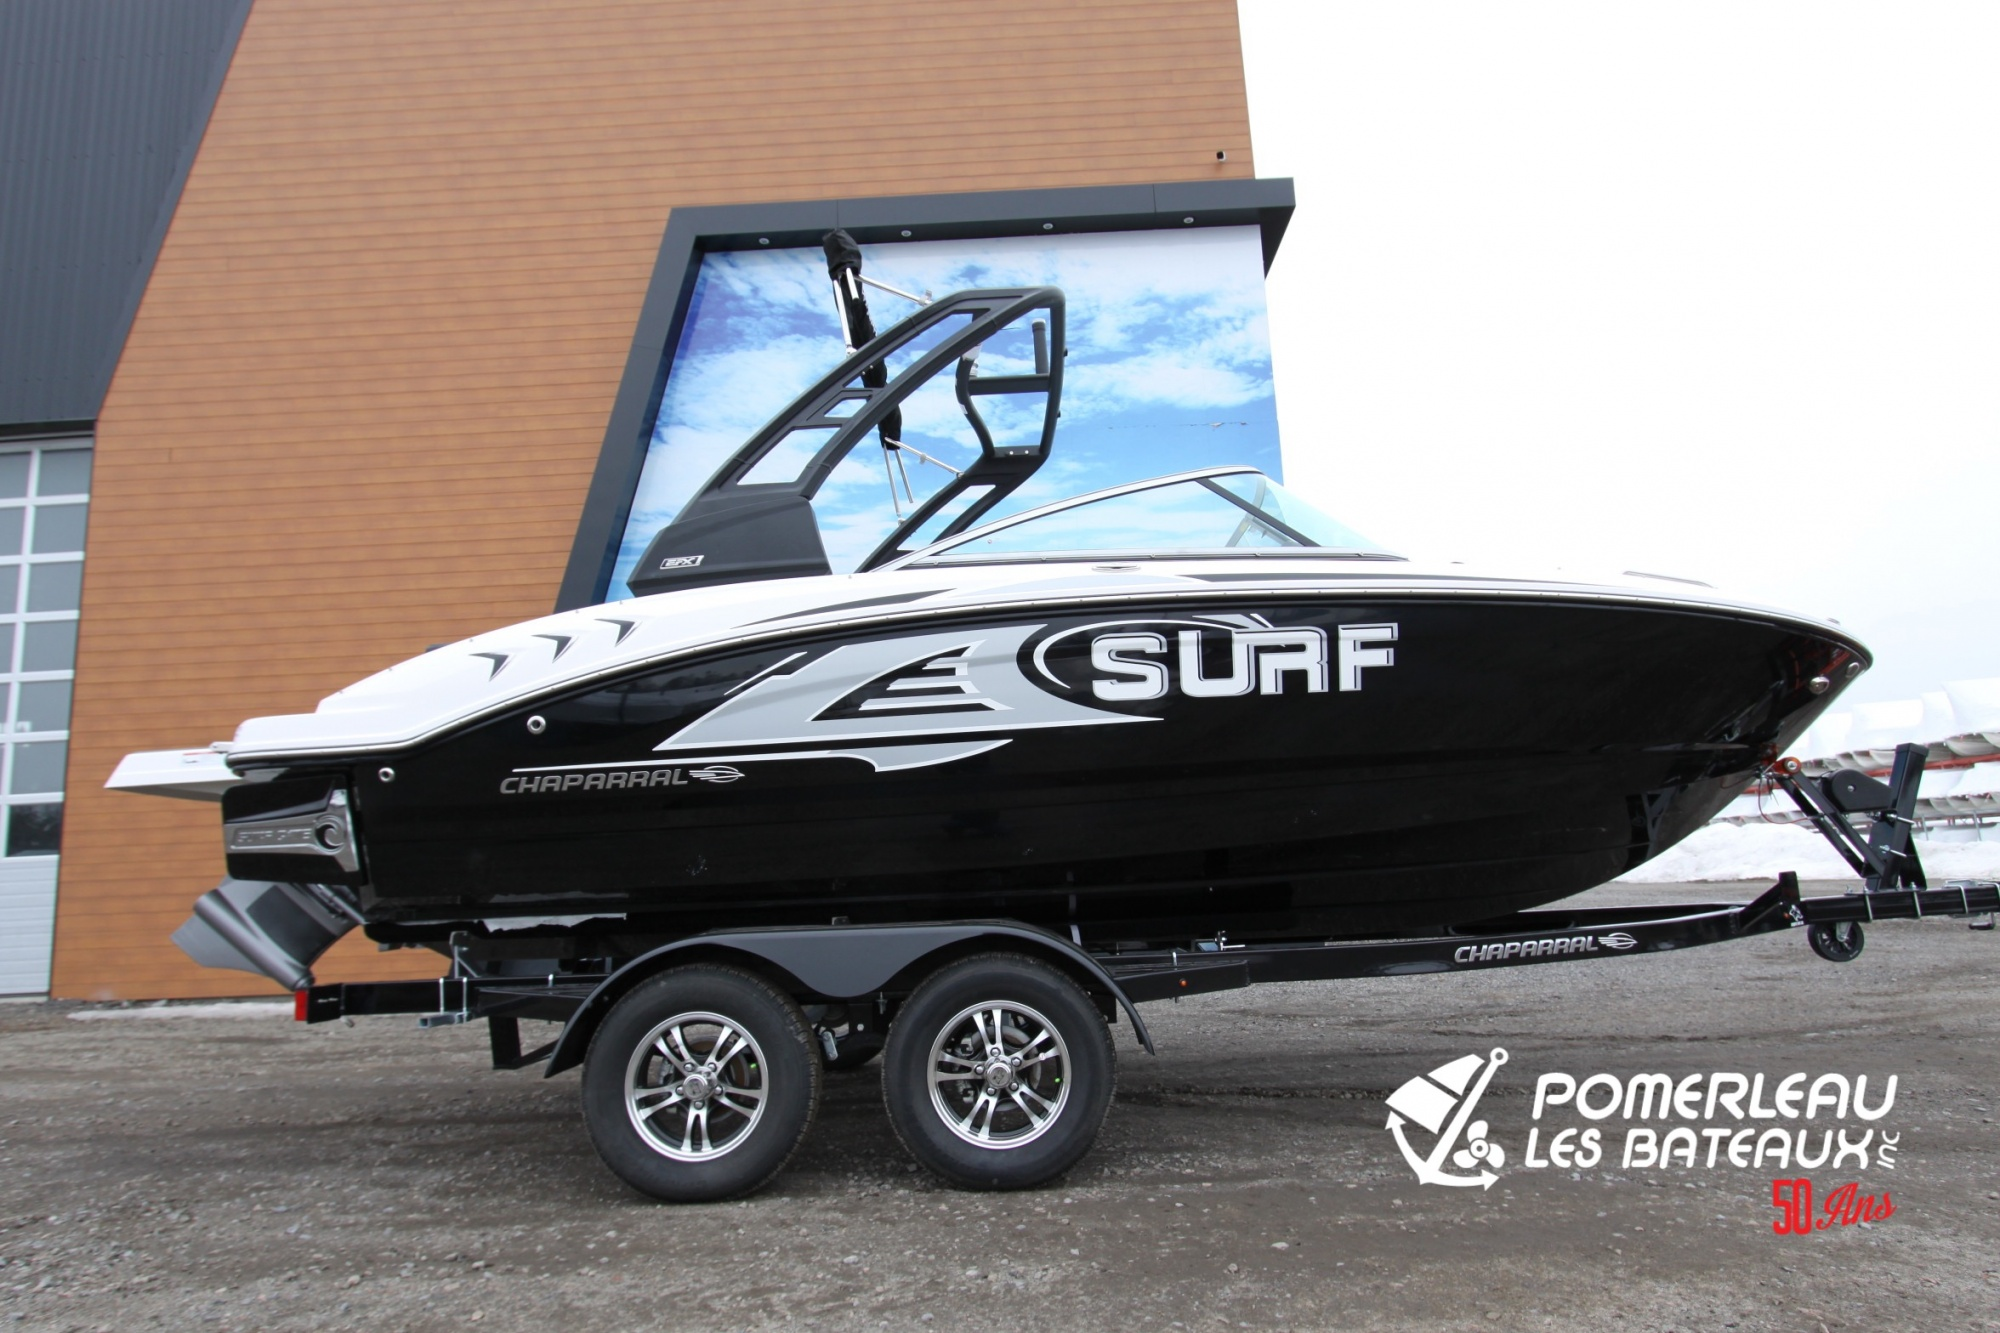 Chaparral 21 Surf - IMG_5142